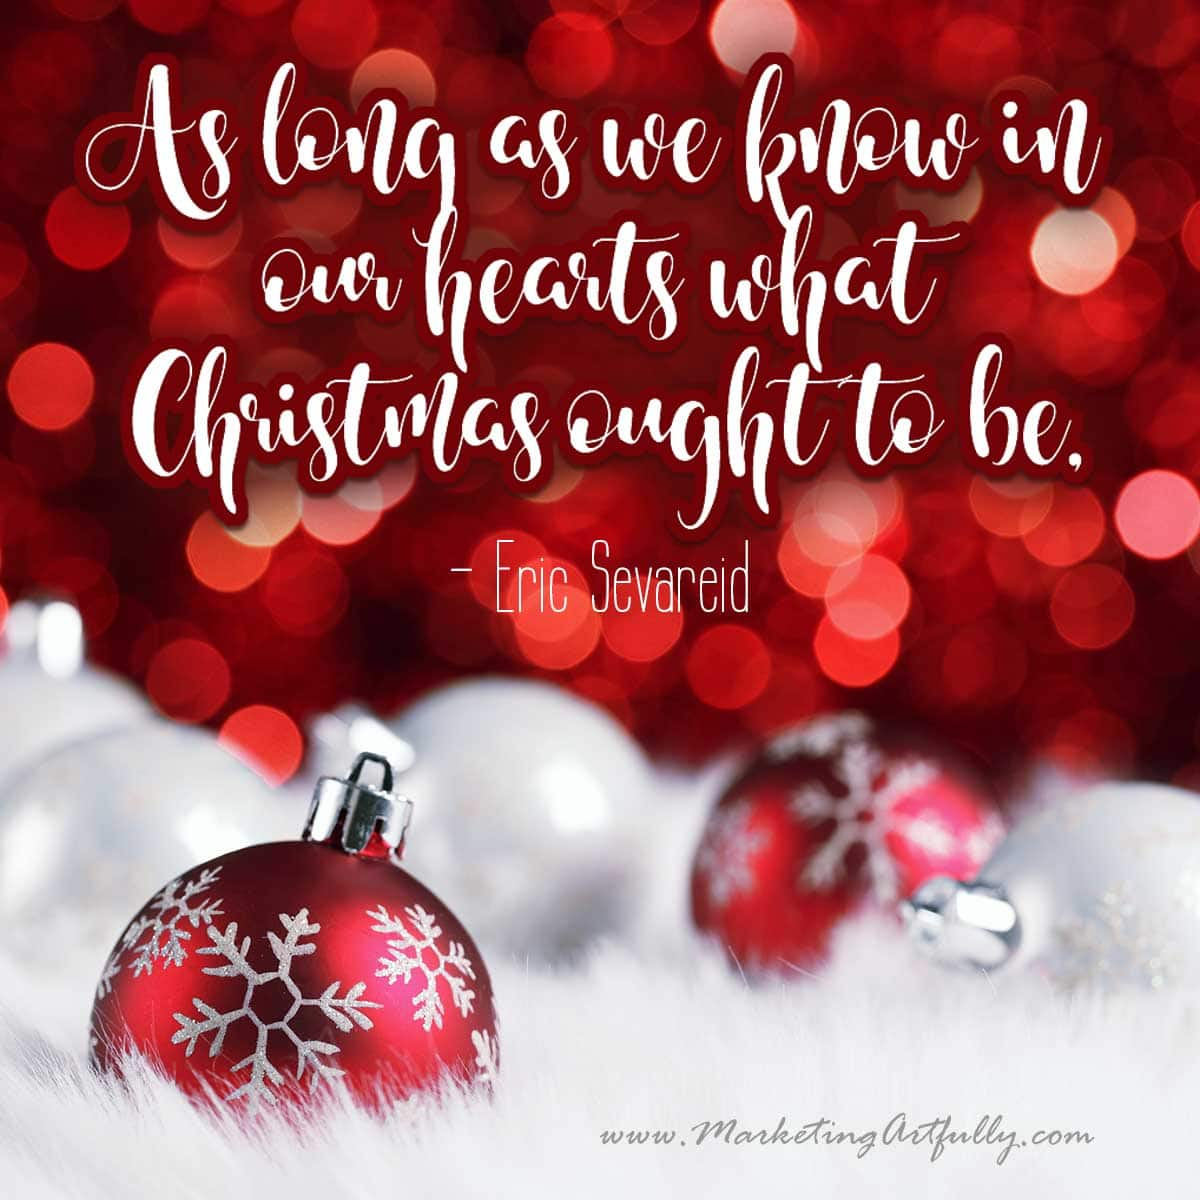 Christmas Eve Quotes.Christmas Quotes For Business And Clients